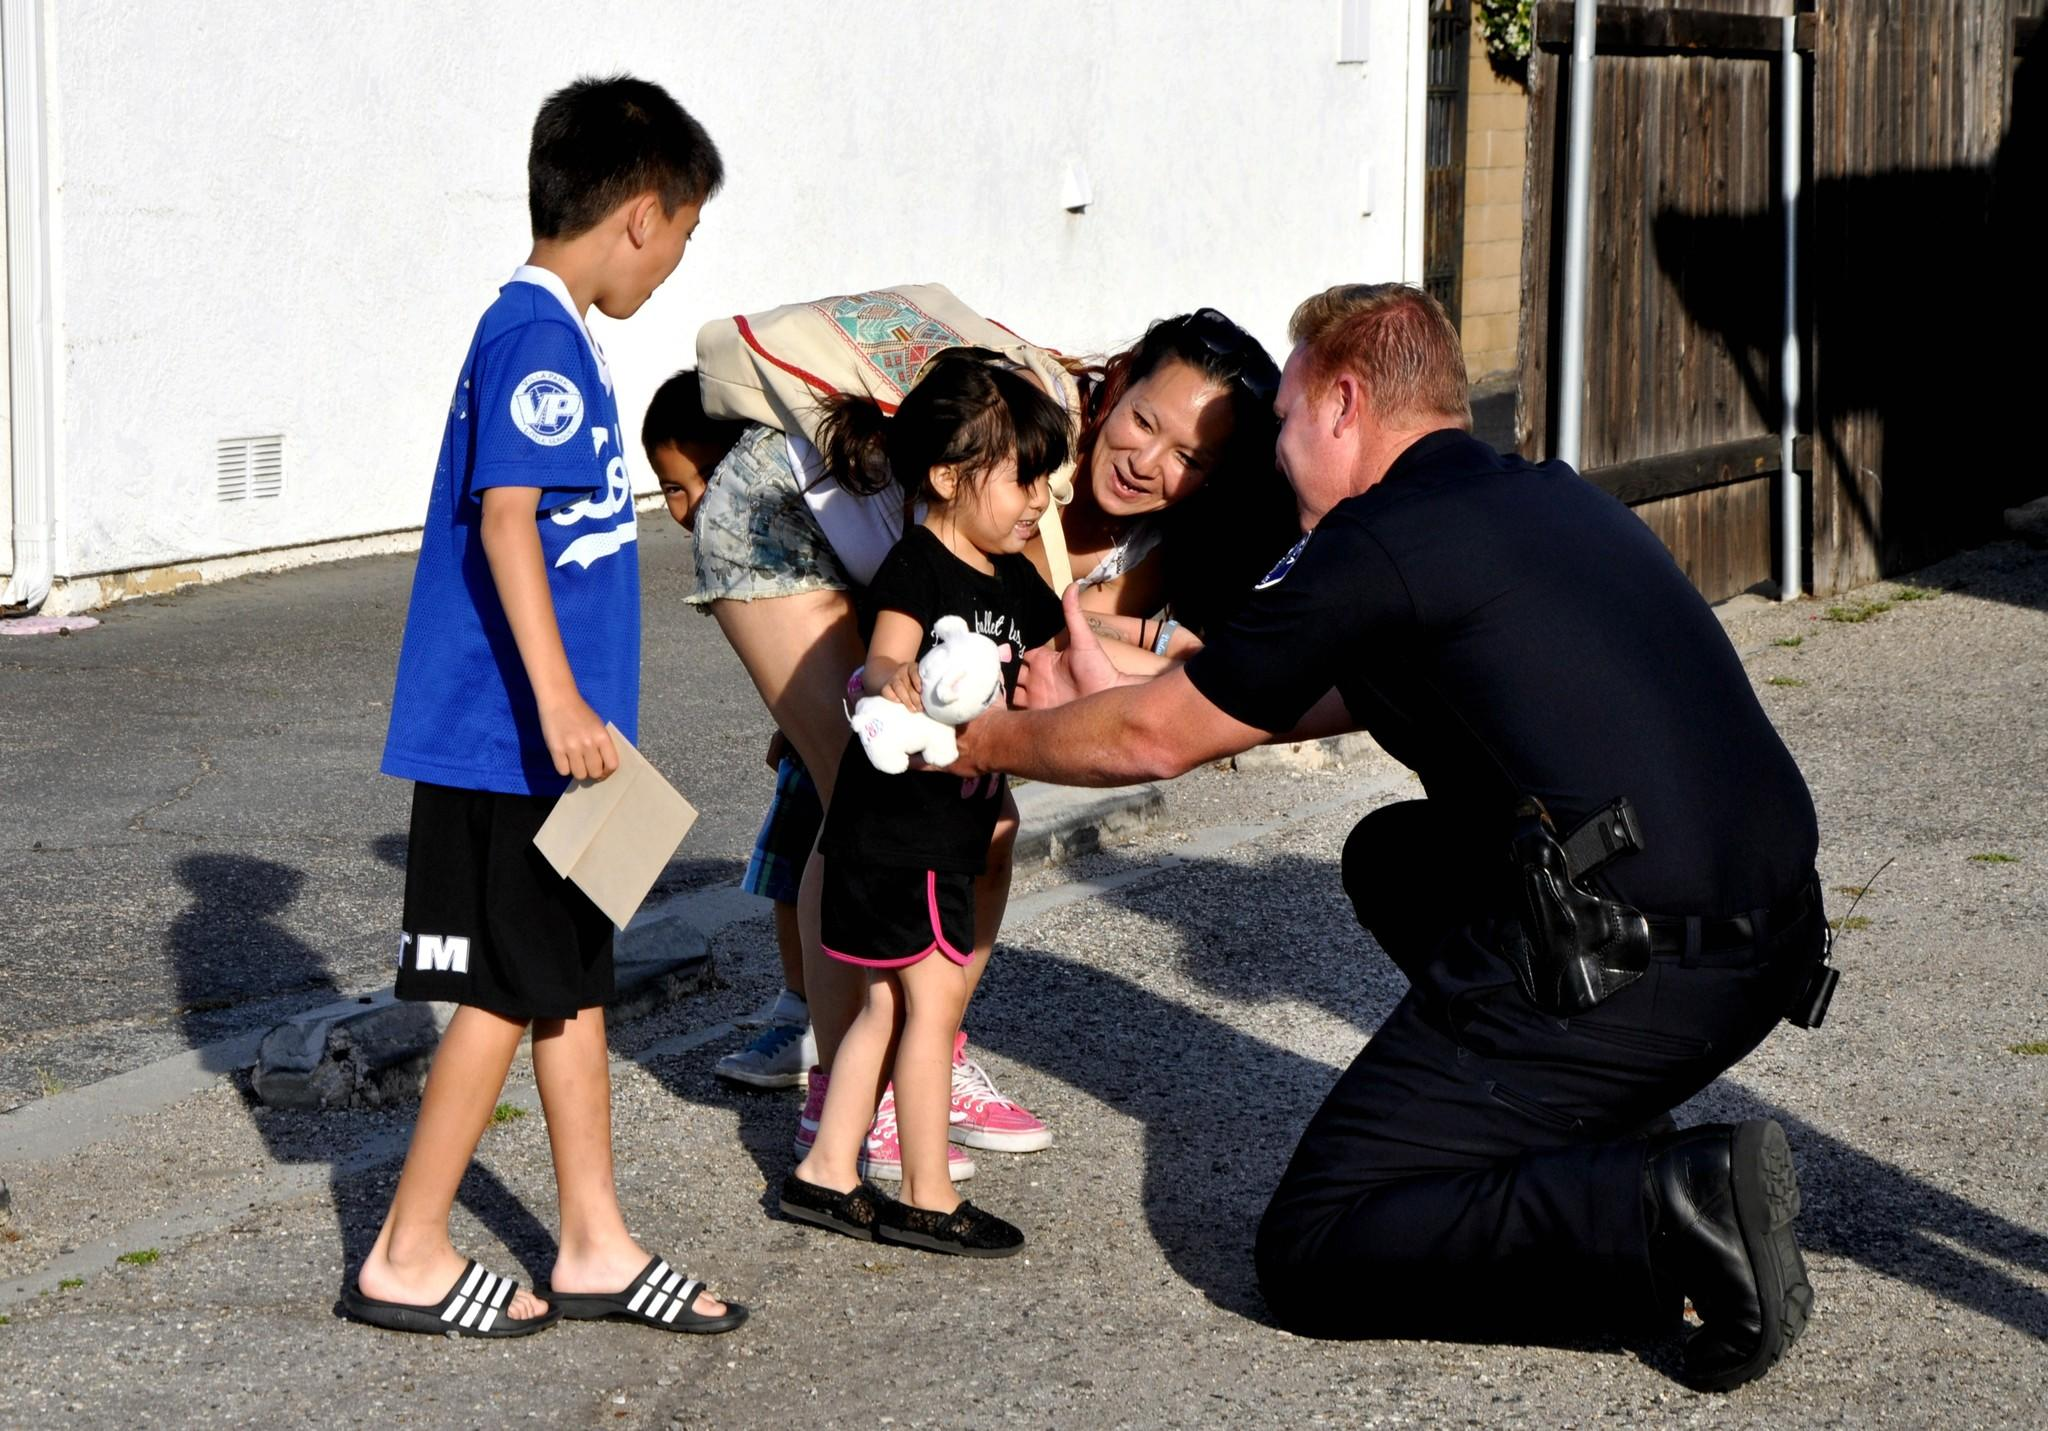 Costa Mesa Police Department Officer Matt Olin is reunited with Sara Villasenor, the mother of 4-year-old Nina, whom Olin rescued from near drowning on Monday.